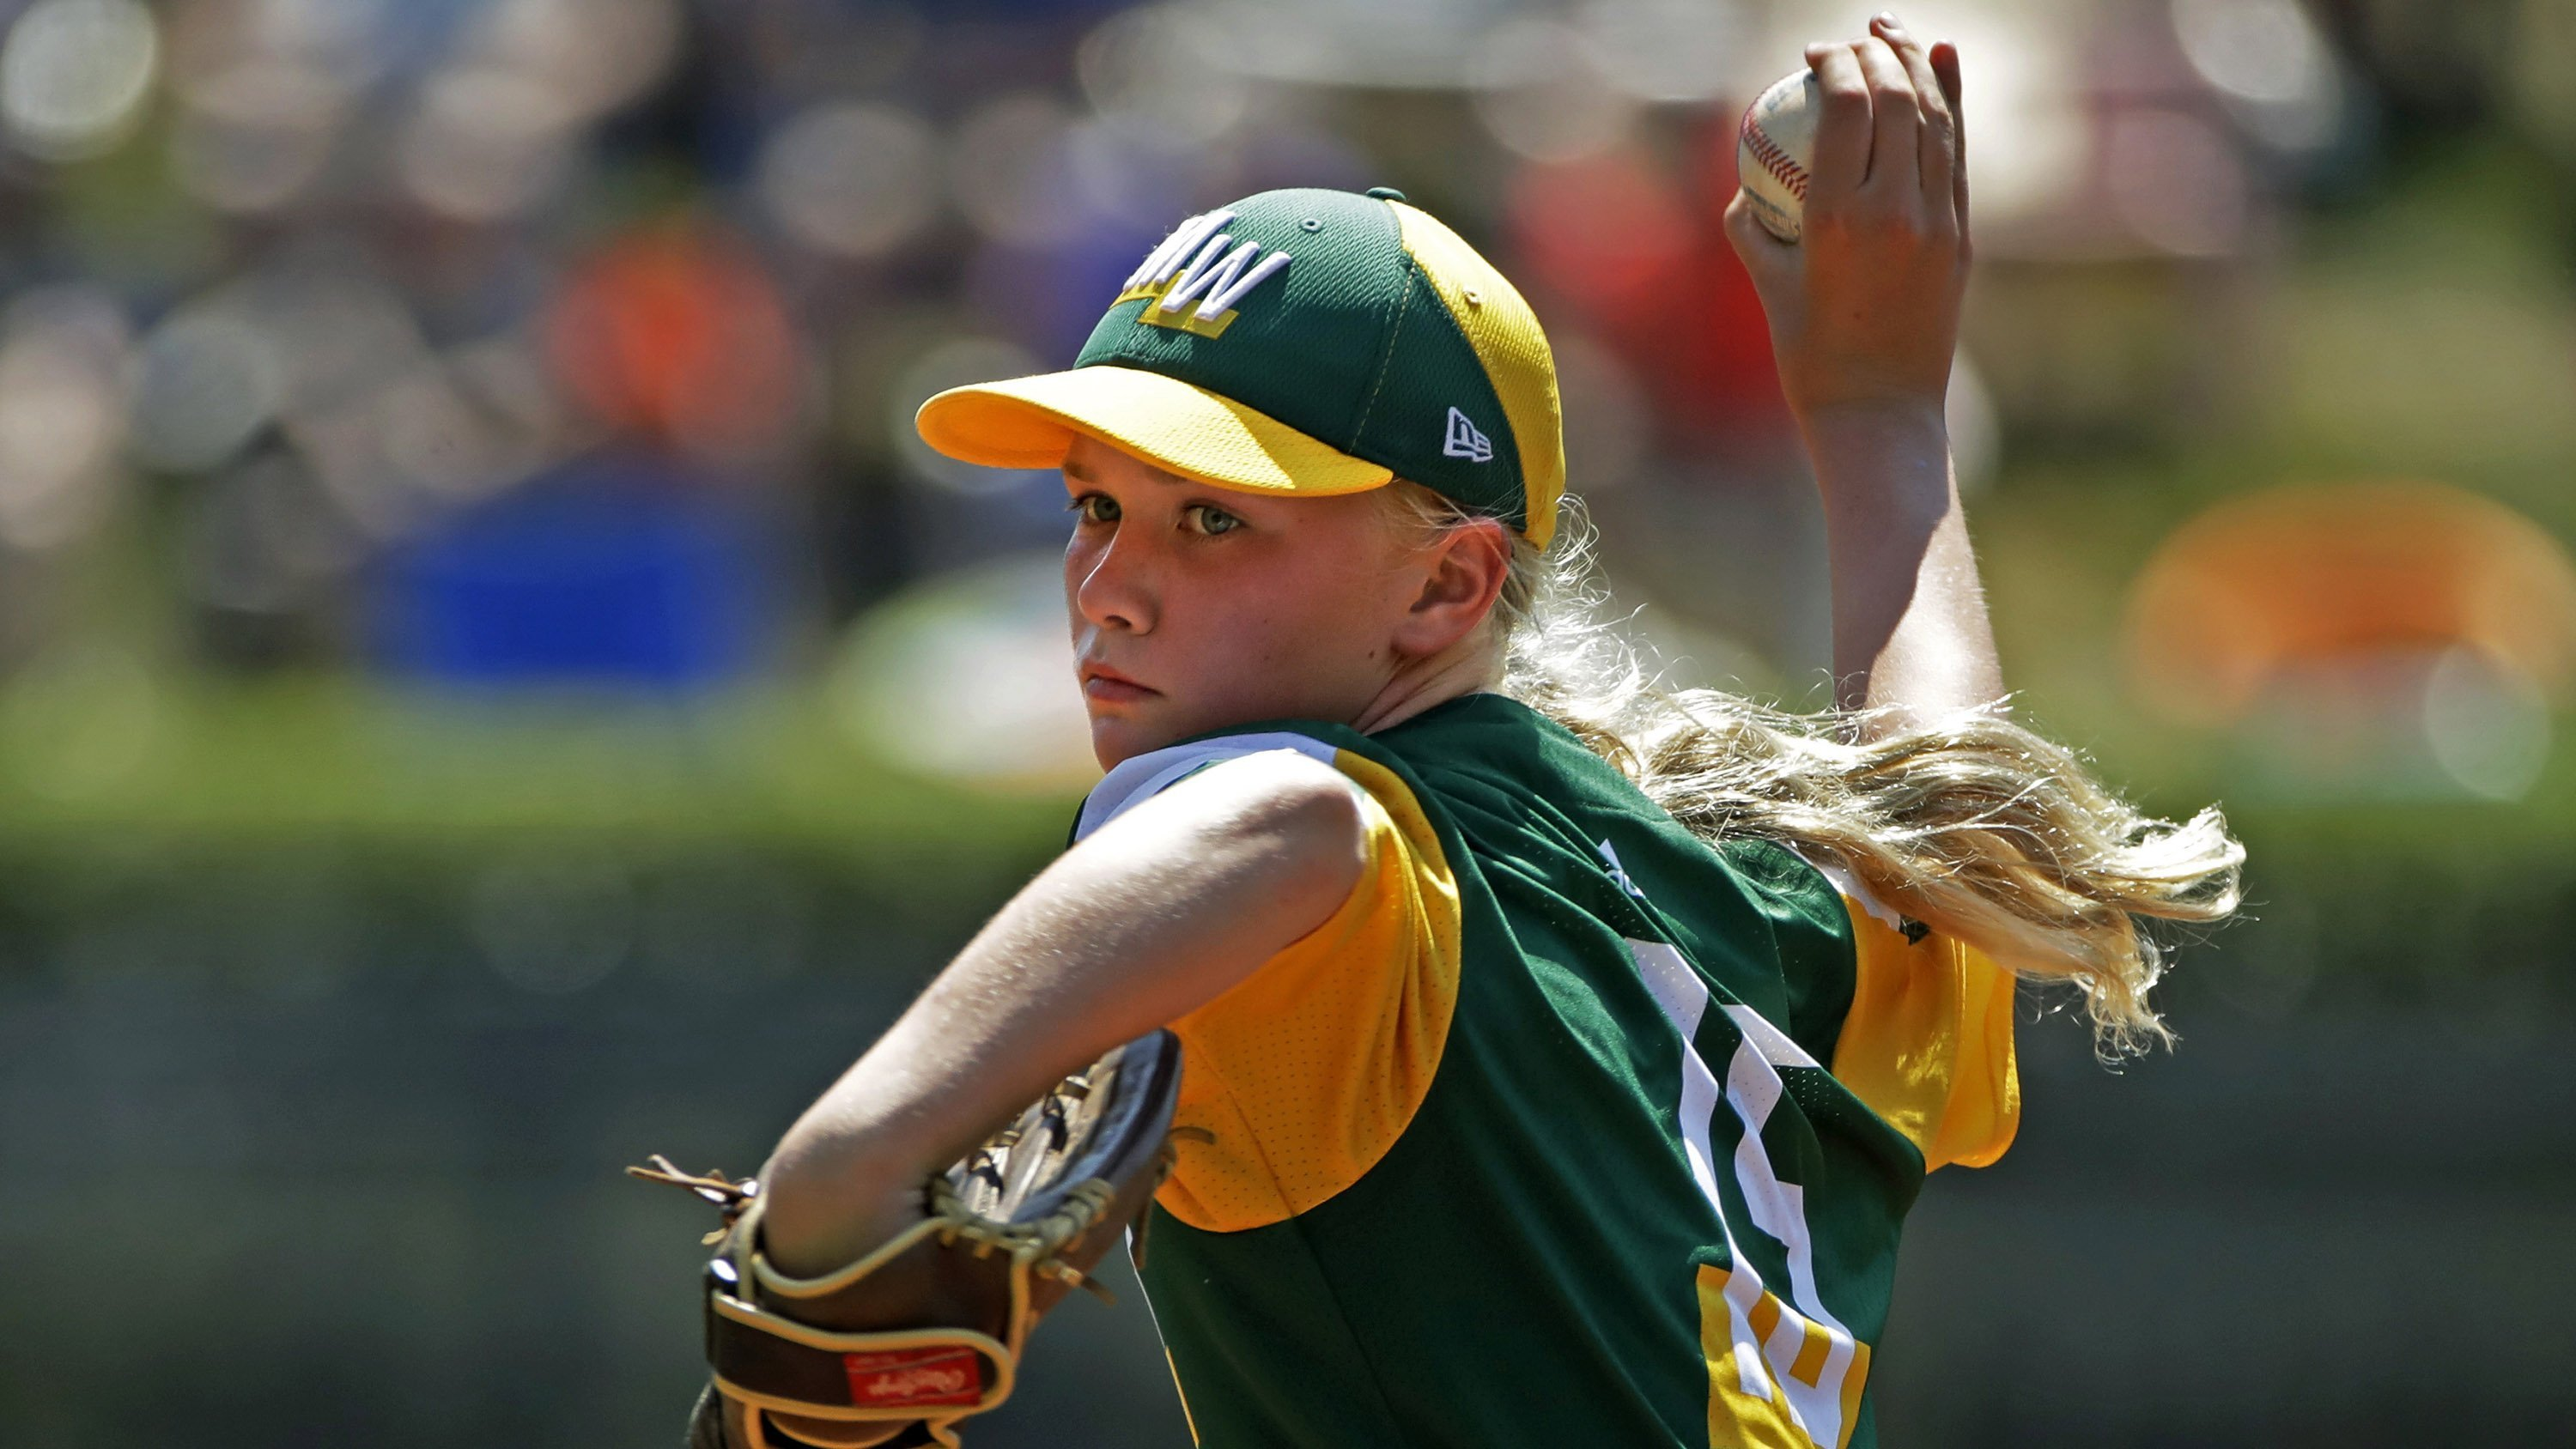 She's been a phenom at the Little League World Series